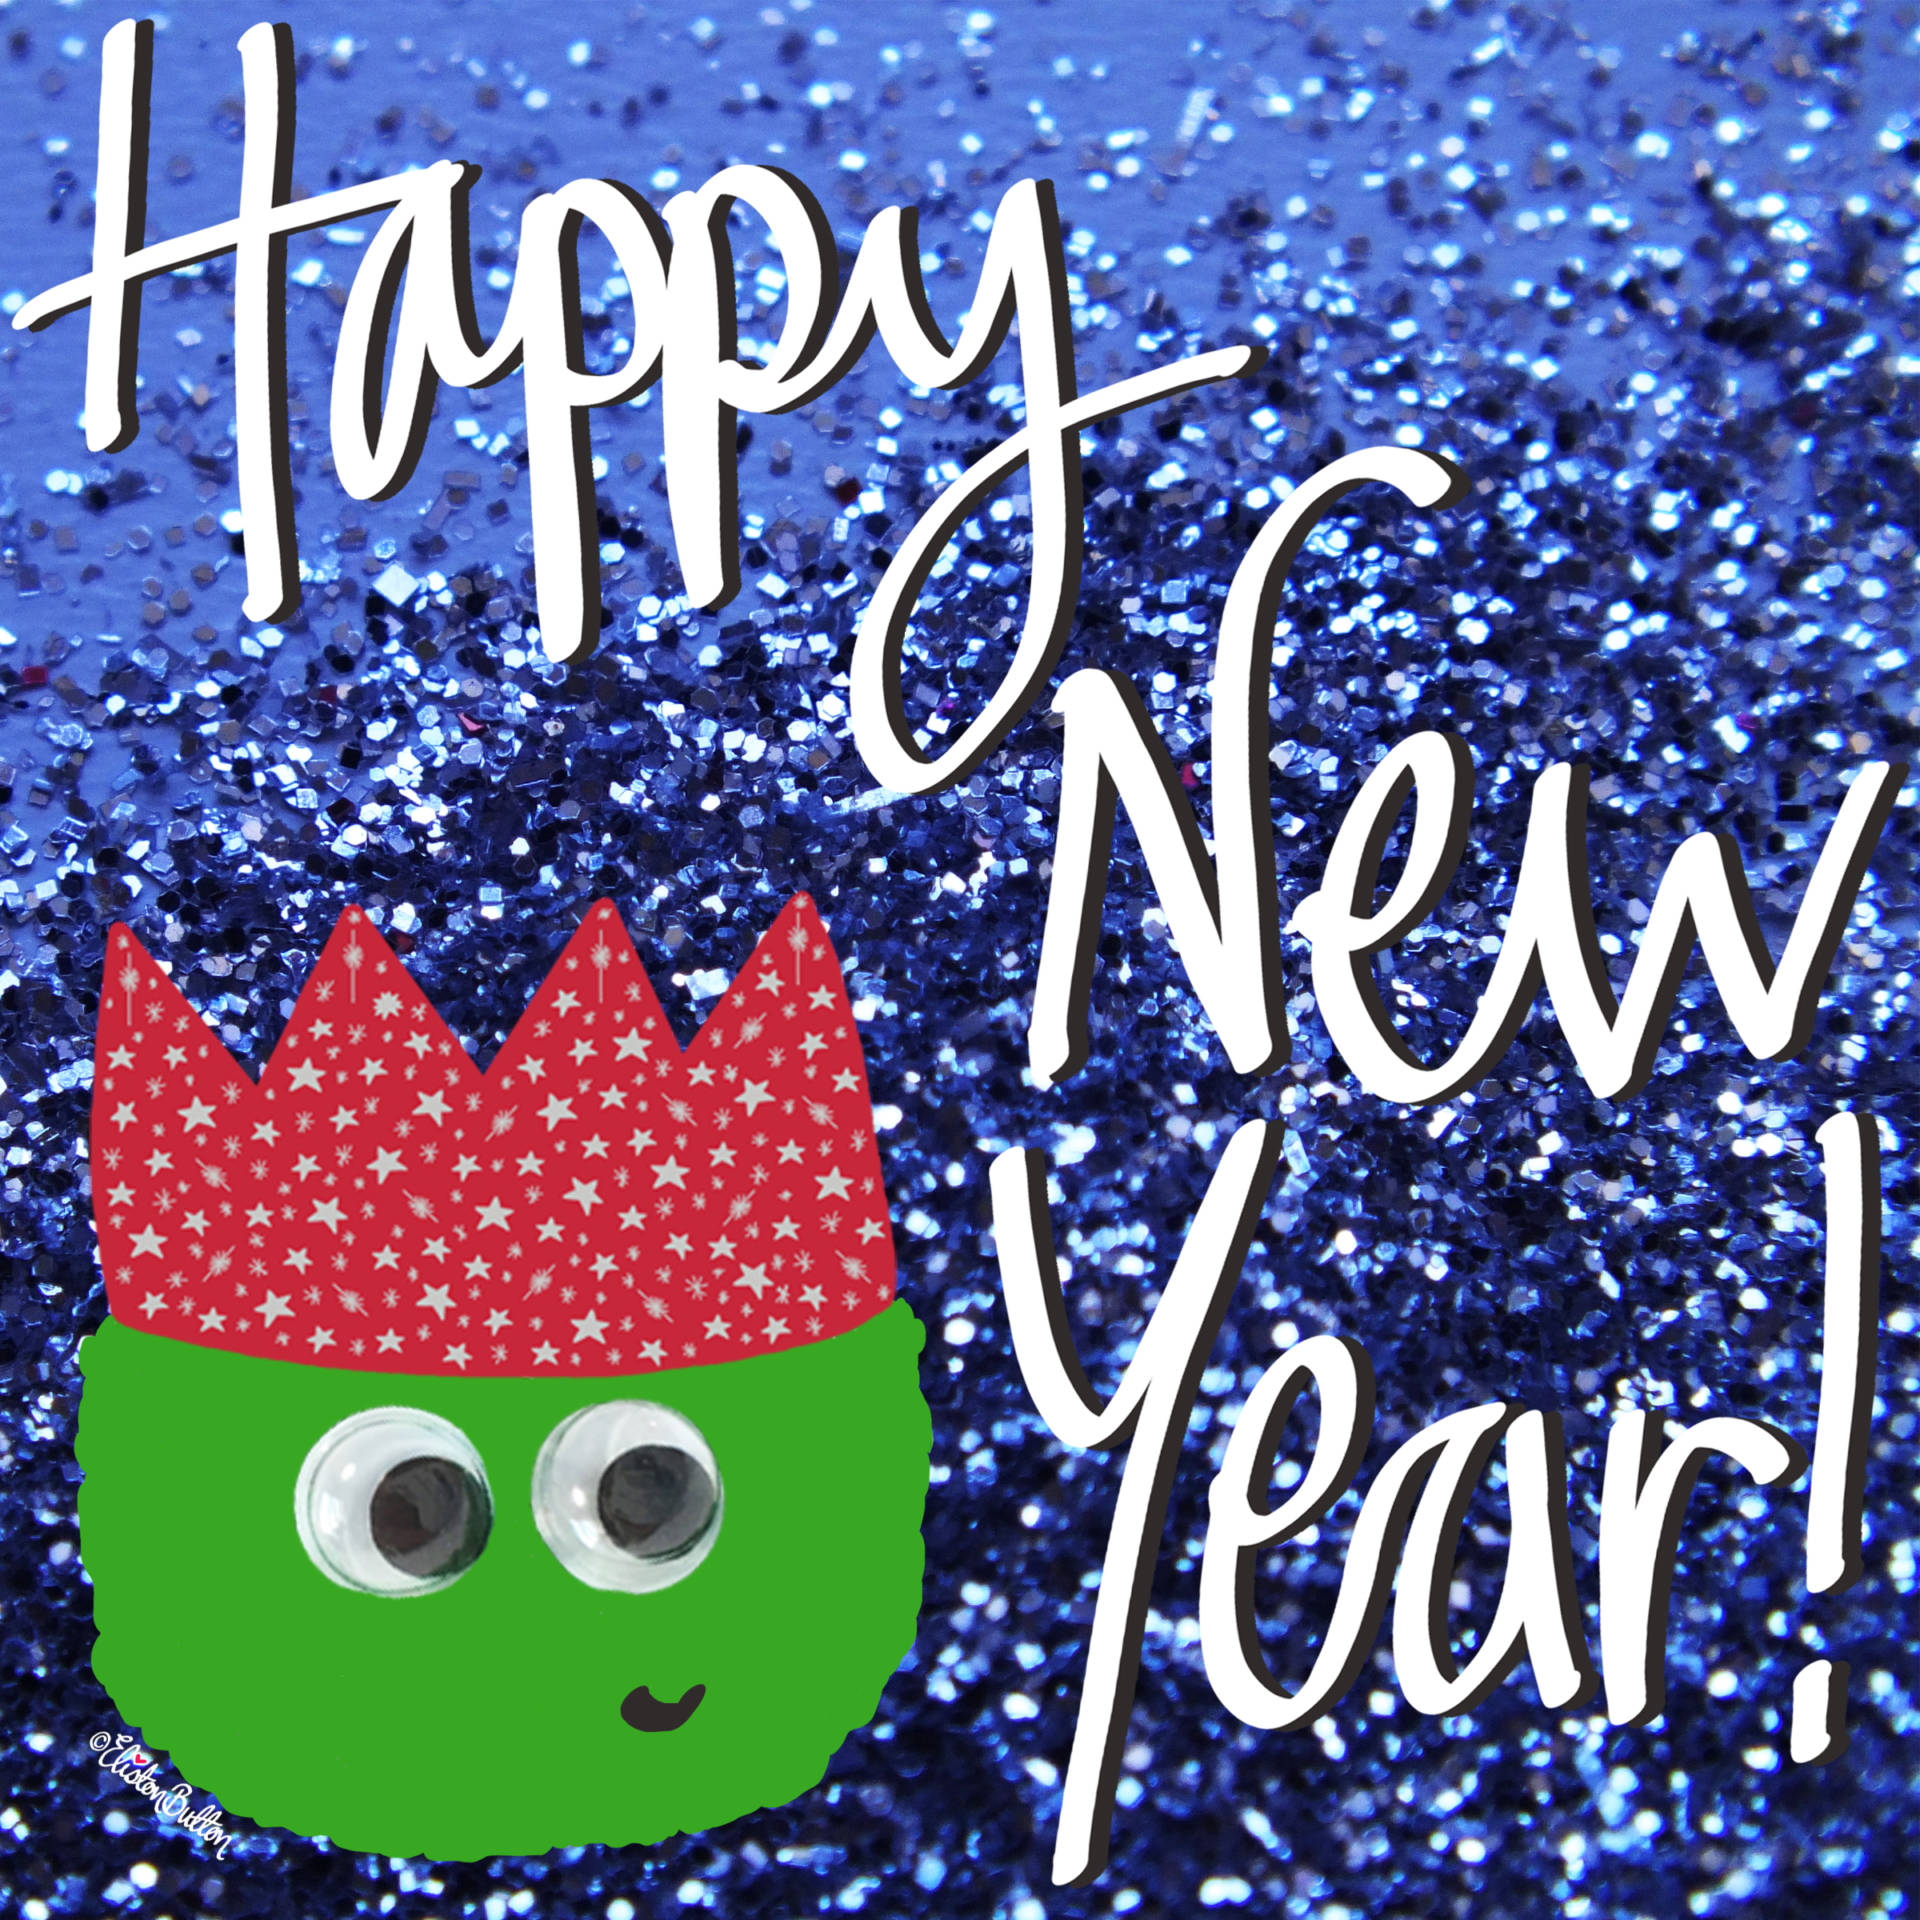 Happy New Year Glitter Christmas Sprout by Eliston Button - Merry Christmas, Happy Holidays and a Magical New Year! at www.elistonbutton.com - Eliston Button - That Crafty Kid – Art, Design, Craft & Adventure.